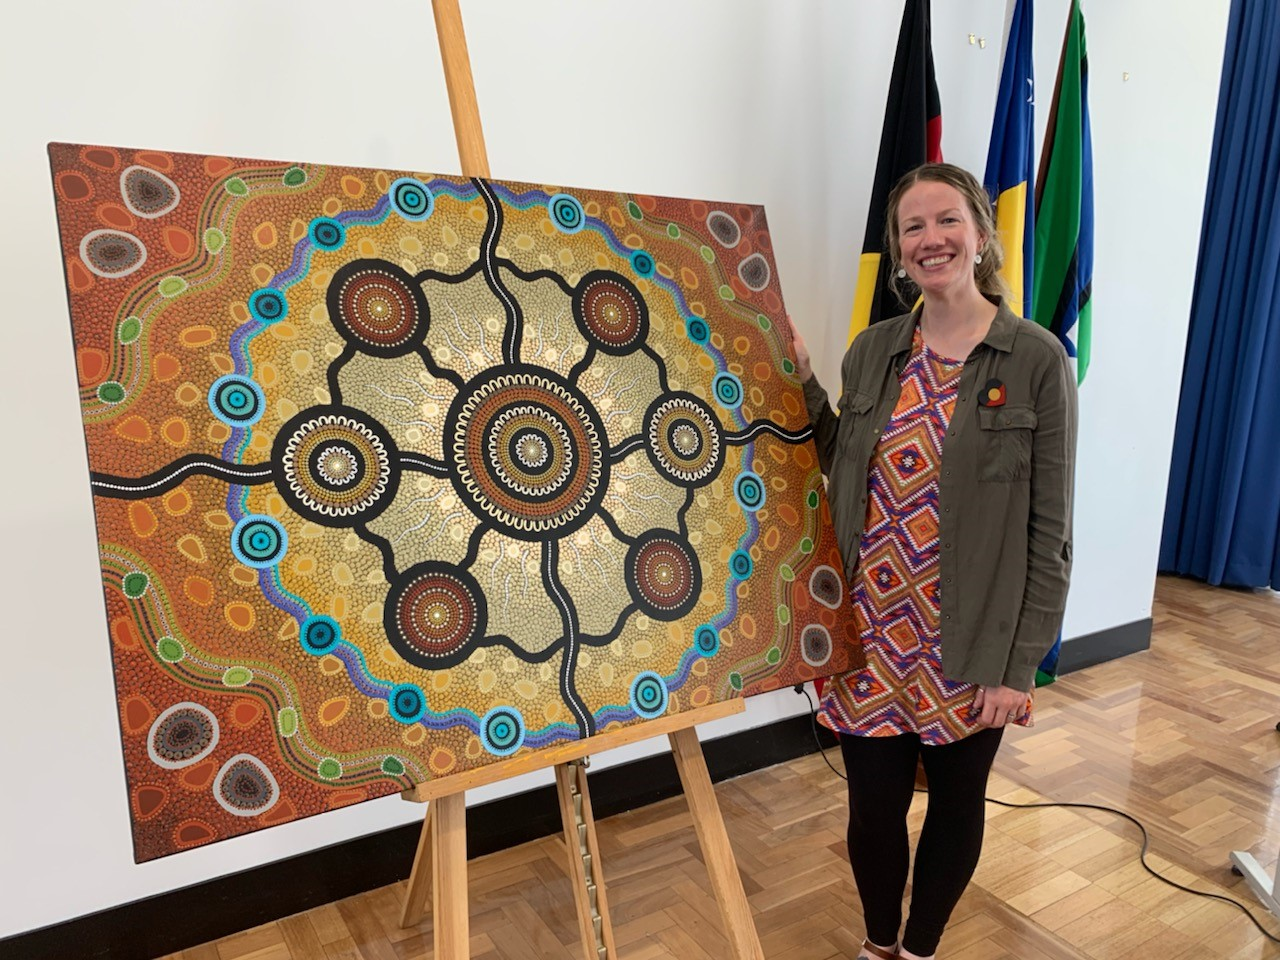 Artist Leah Brideson with her artwork titled 'Strength in Community' commissioned for the ACT Aboriginal and Torres Strait Islander Agreement 2019-2028